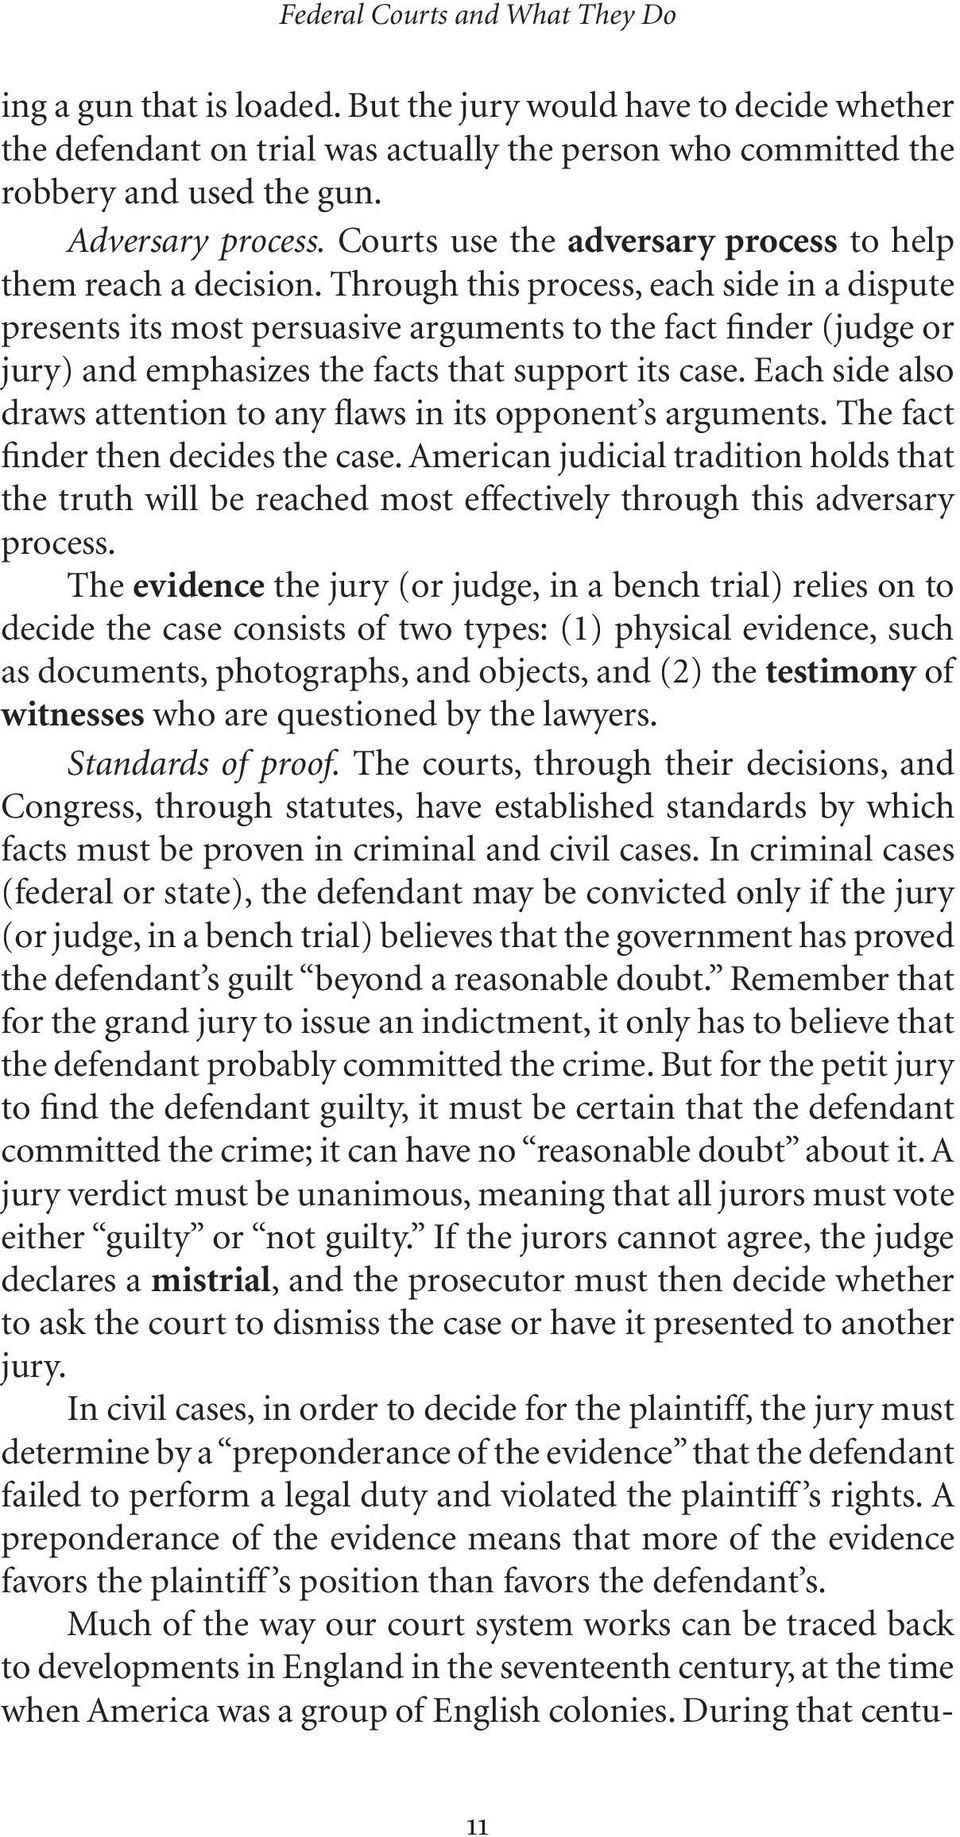 Through this process, each side in a dispute presents its most persuasive arguments to the fact finder (judge or jury) and emphasizes the facts that support its case.